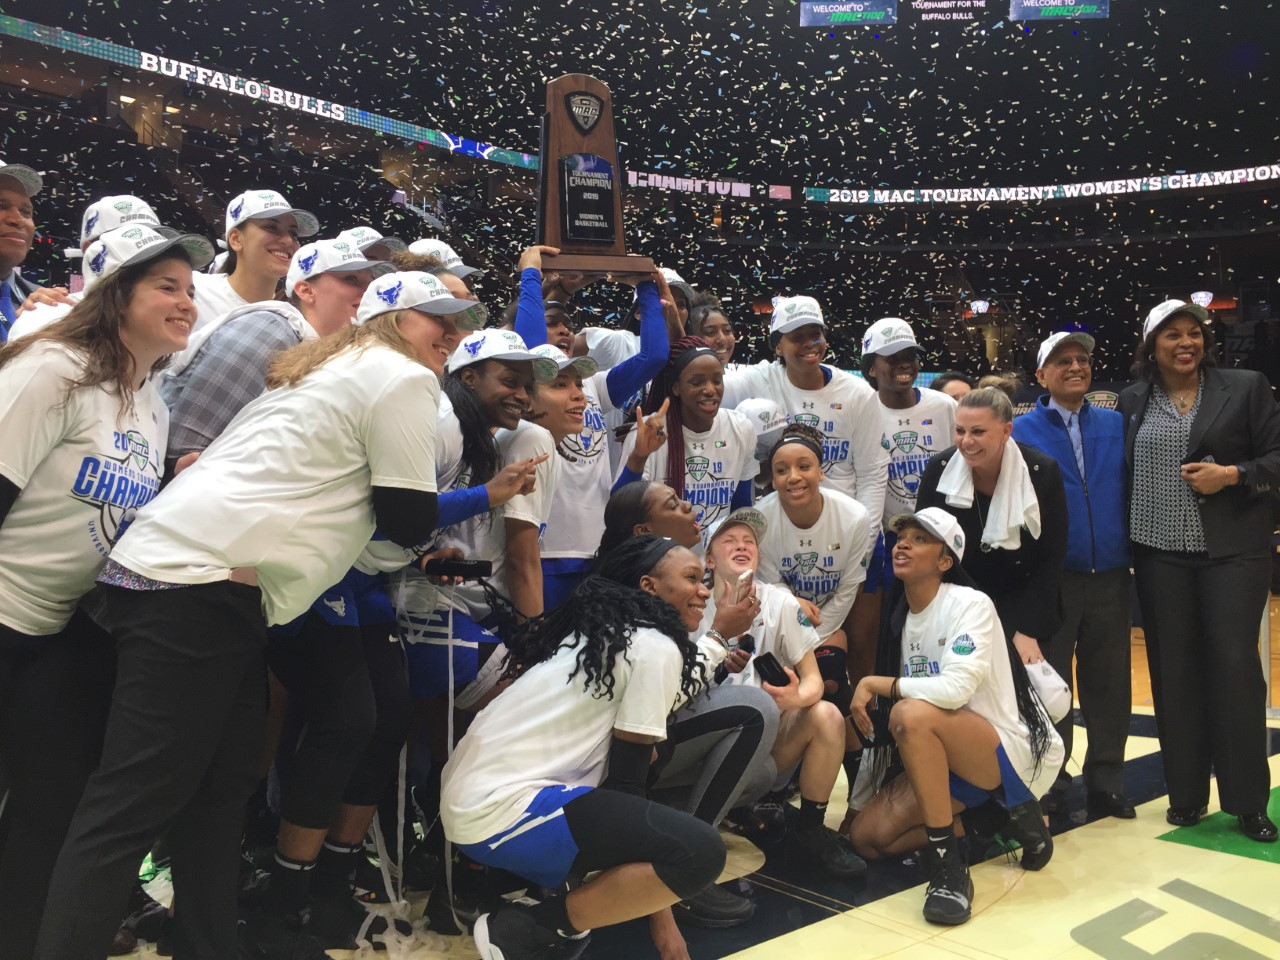 UB women win_1552761590397.jpg.jpg